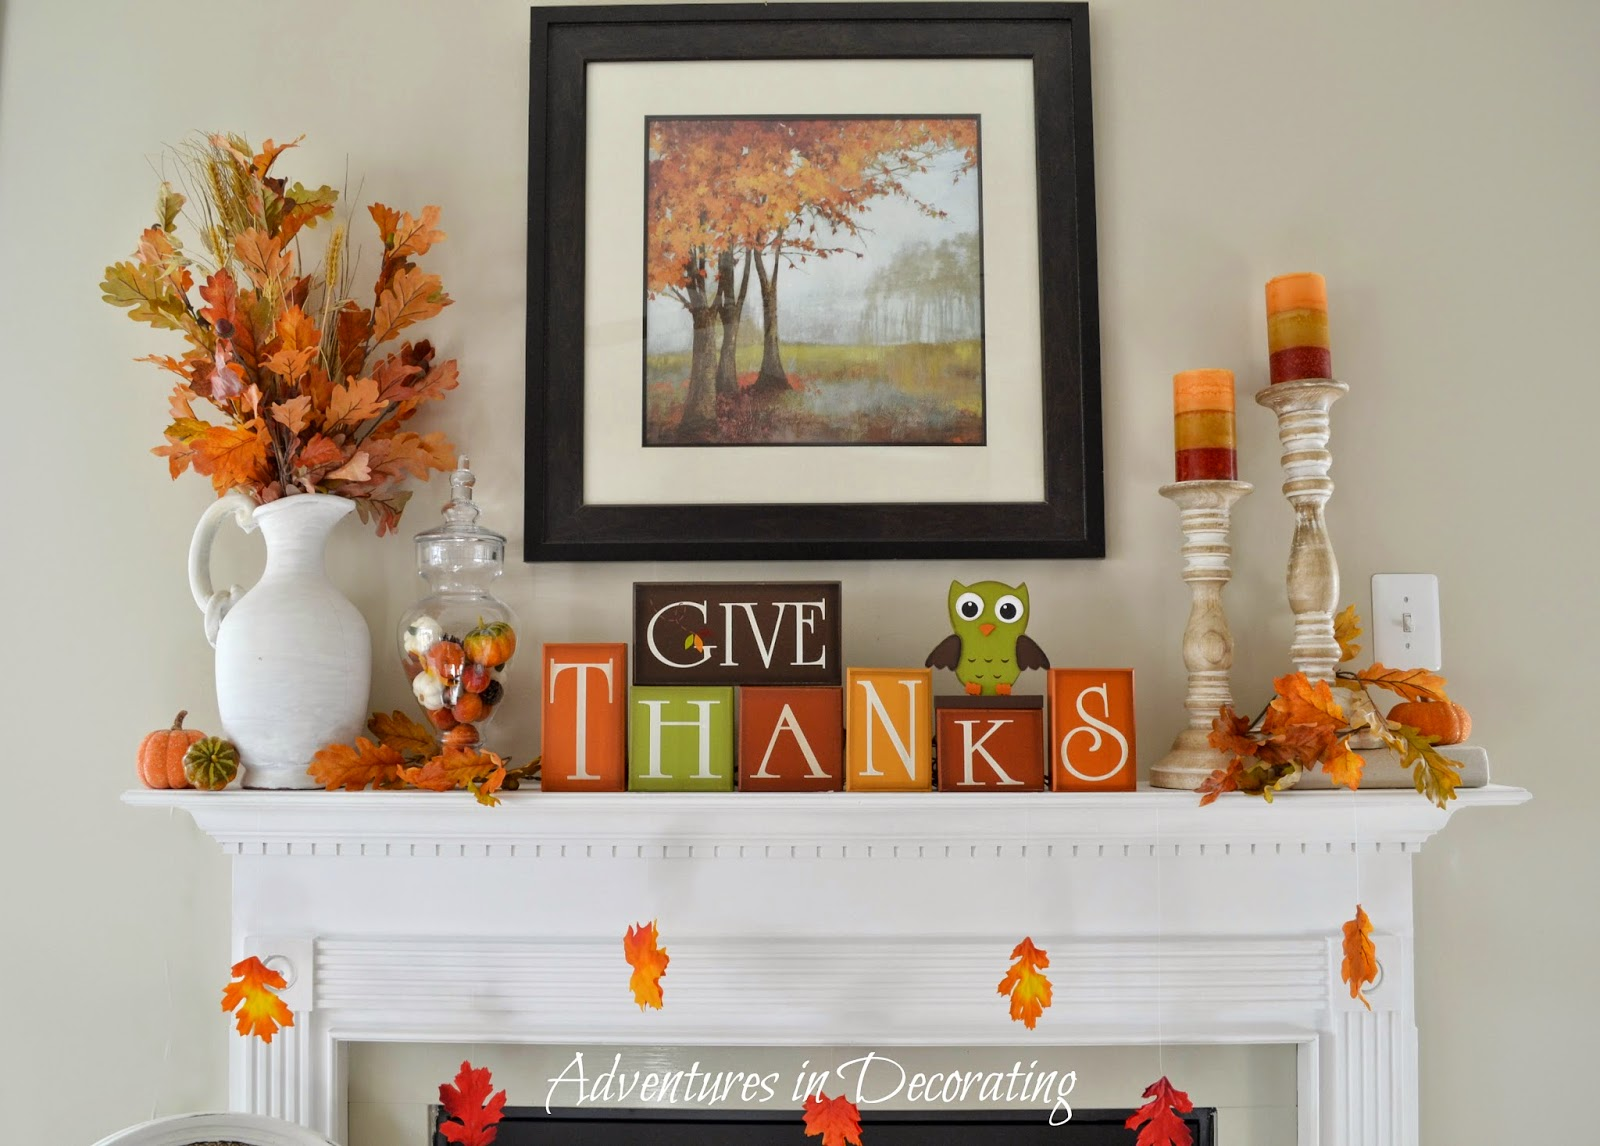 September Decorating Ideas Amusing Adventures In Decorating September 2014 2017